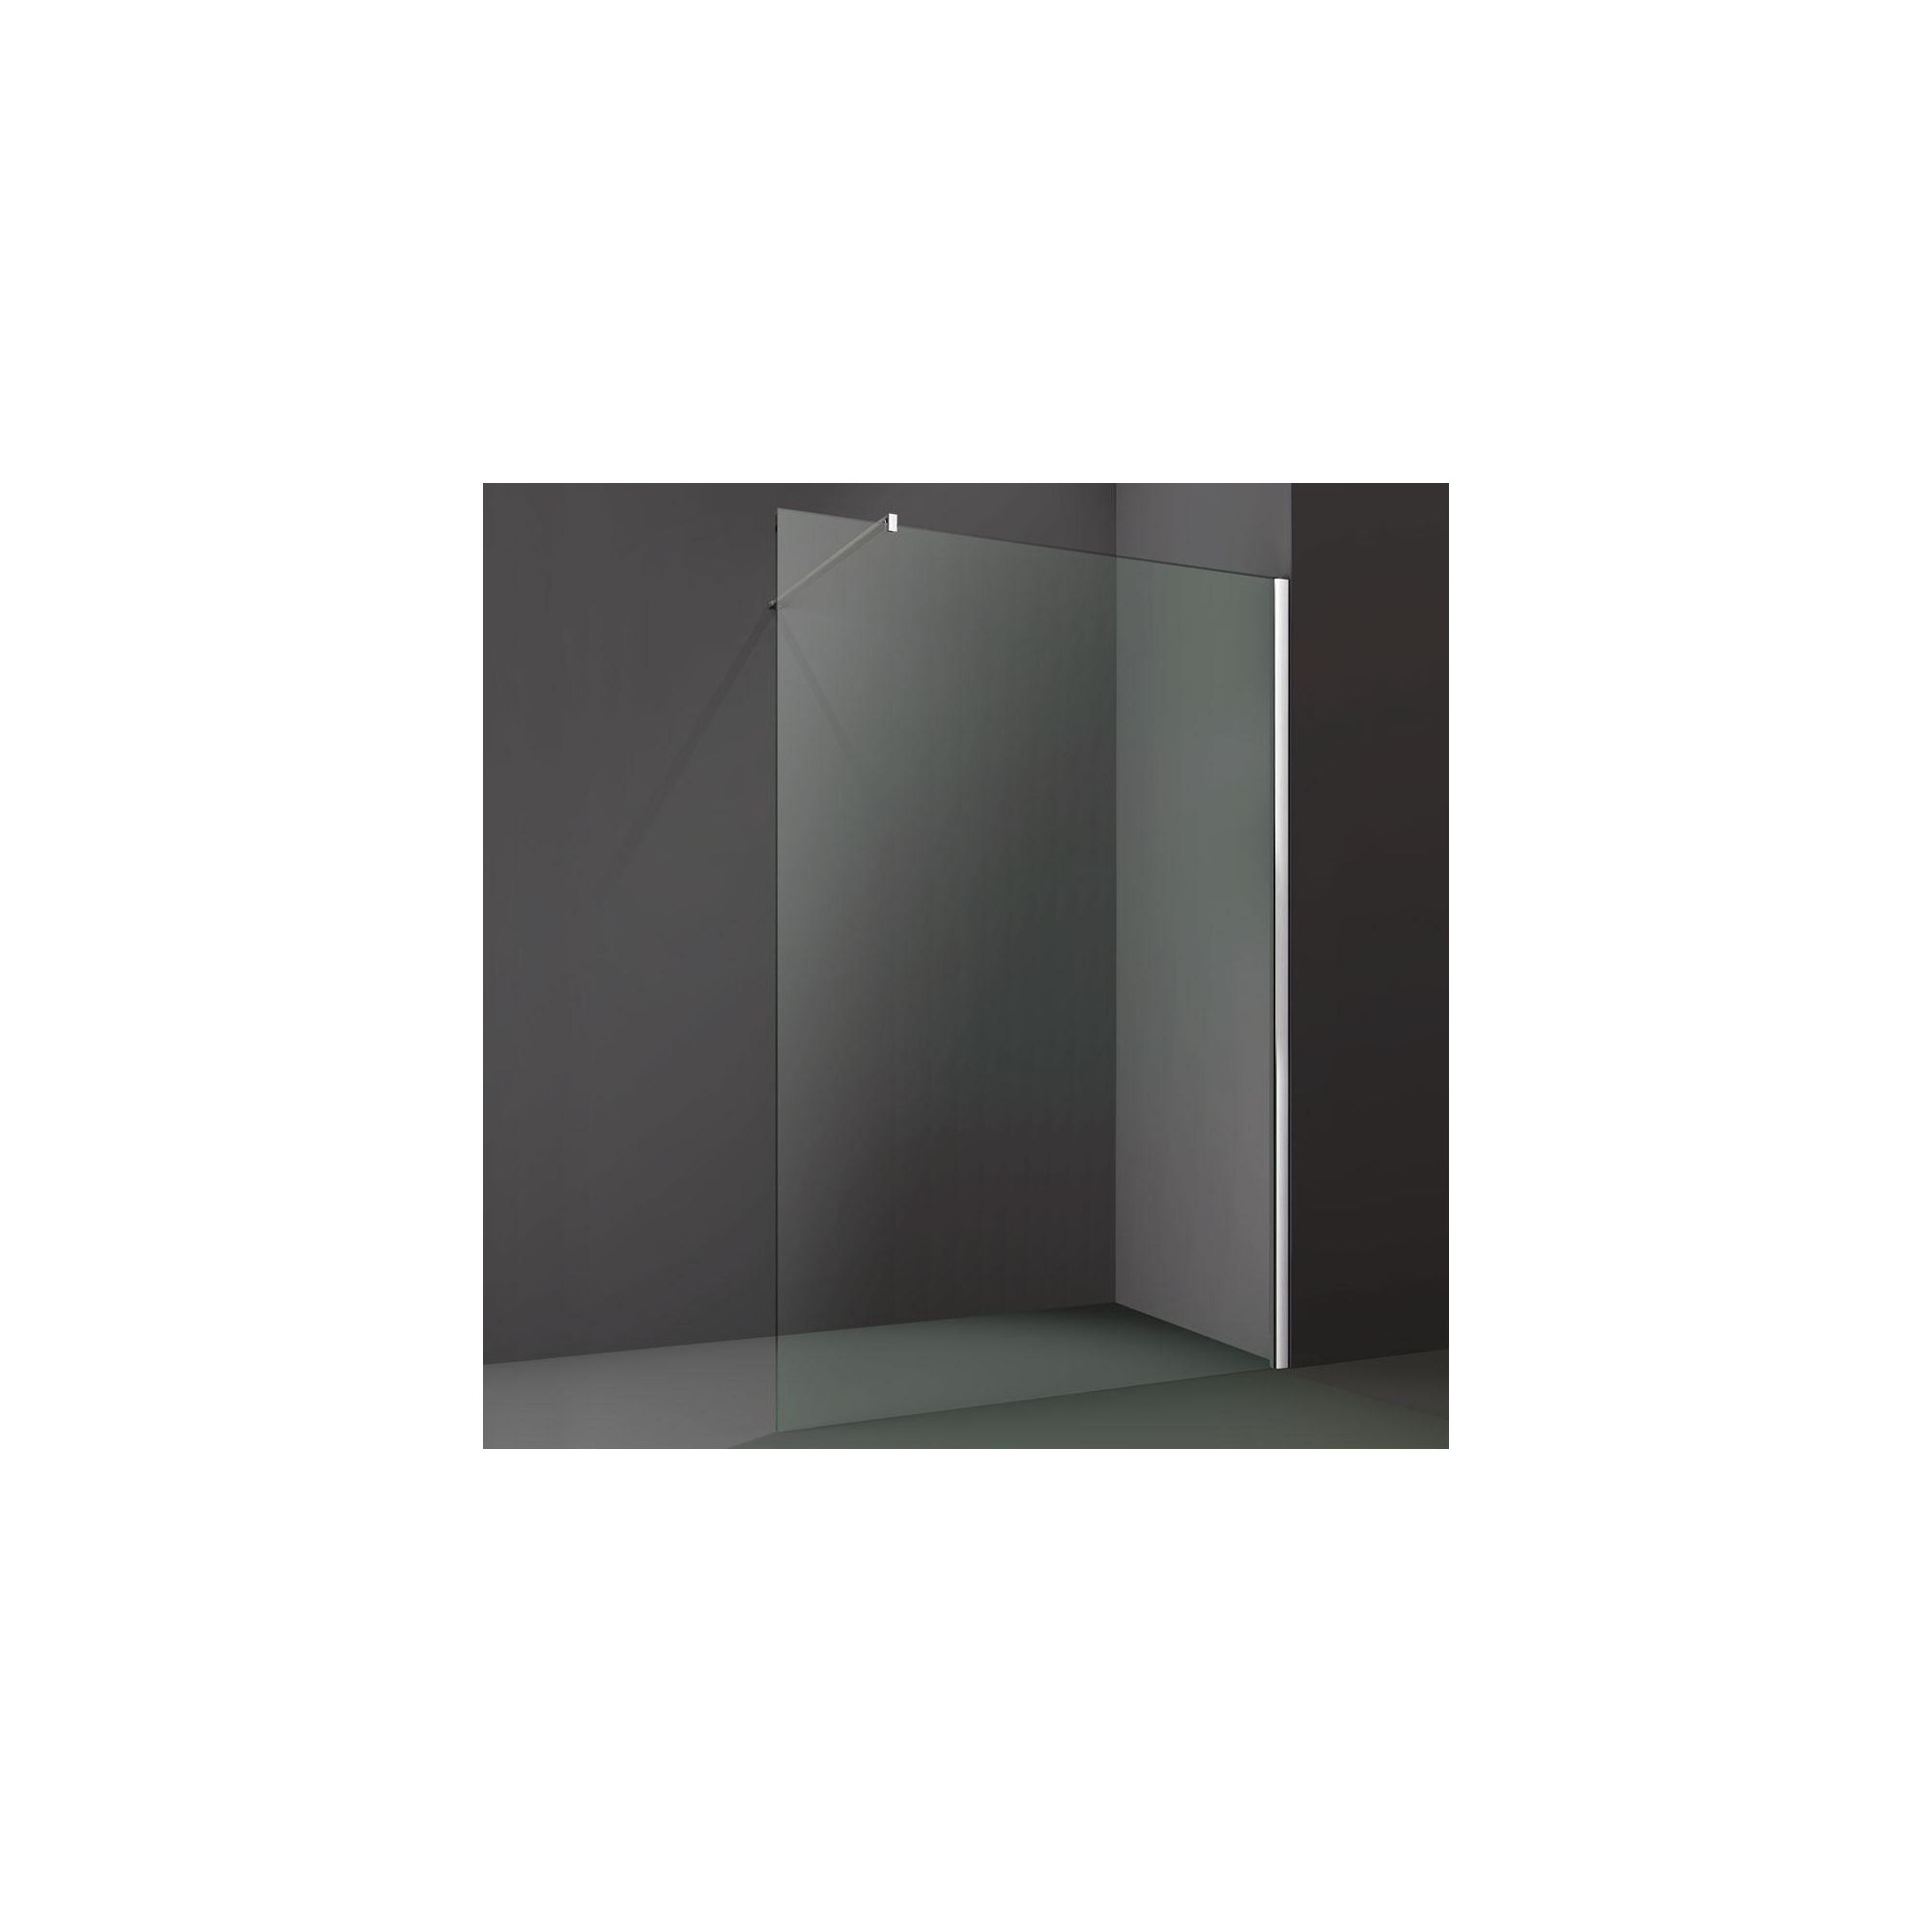 Merlyn Series 8 Wet Room Glass Shower Panel, 1000mm Wide, 8mm Glass at Tescos Direct